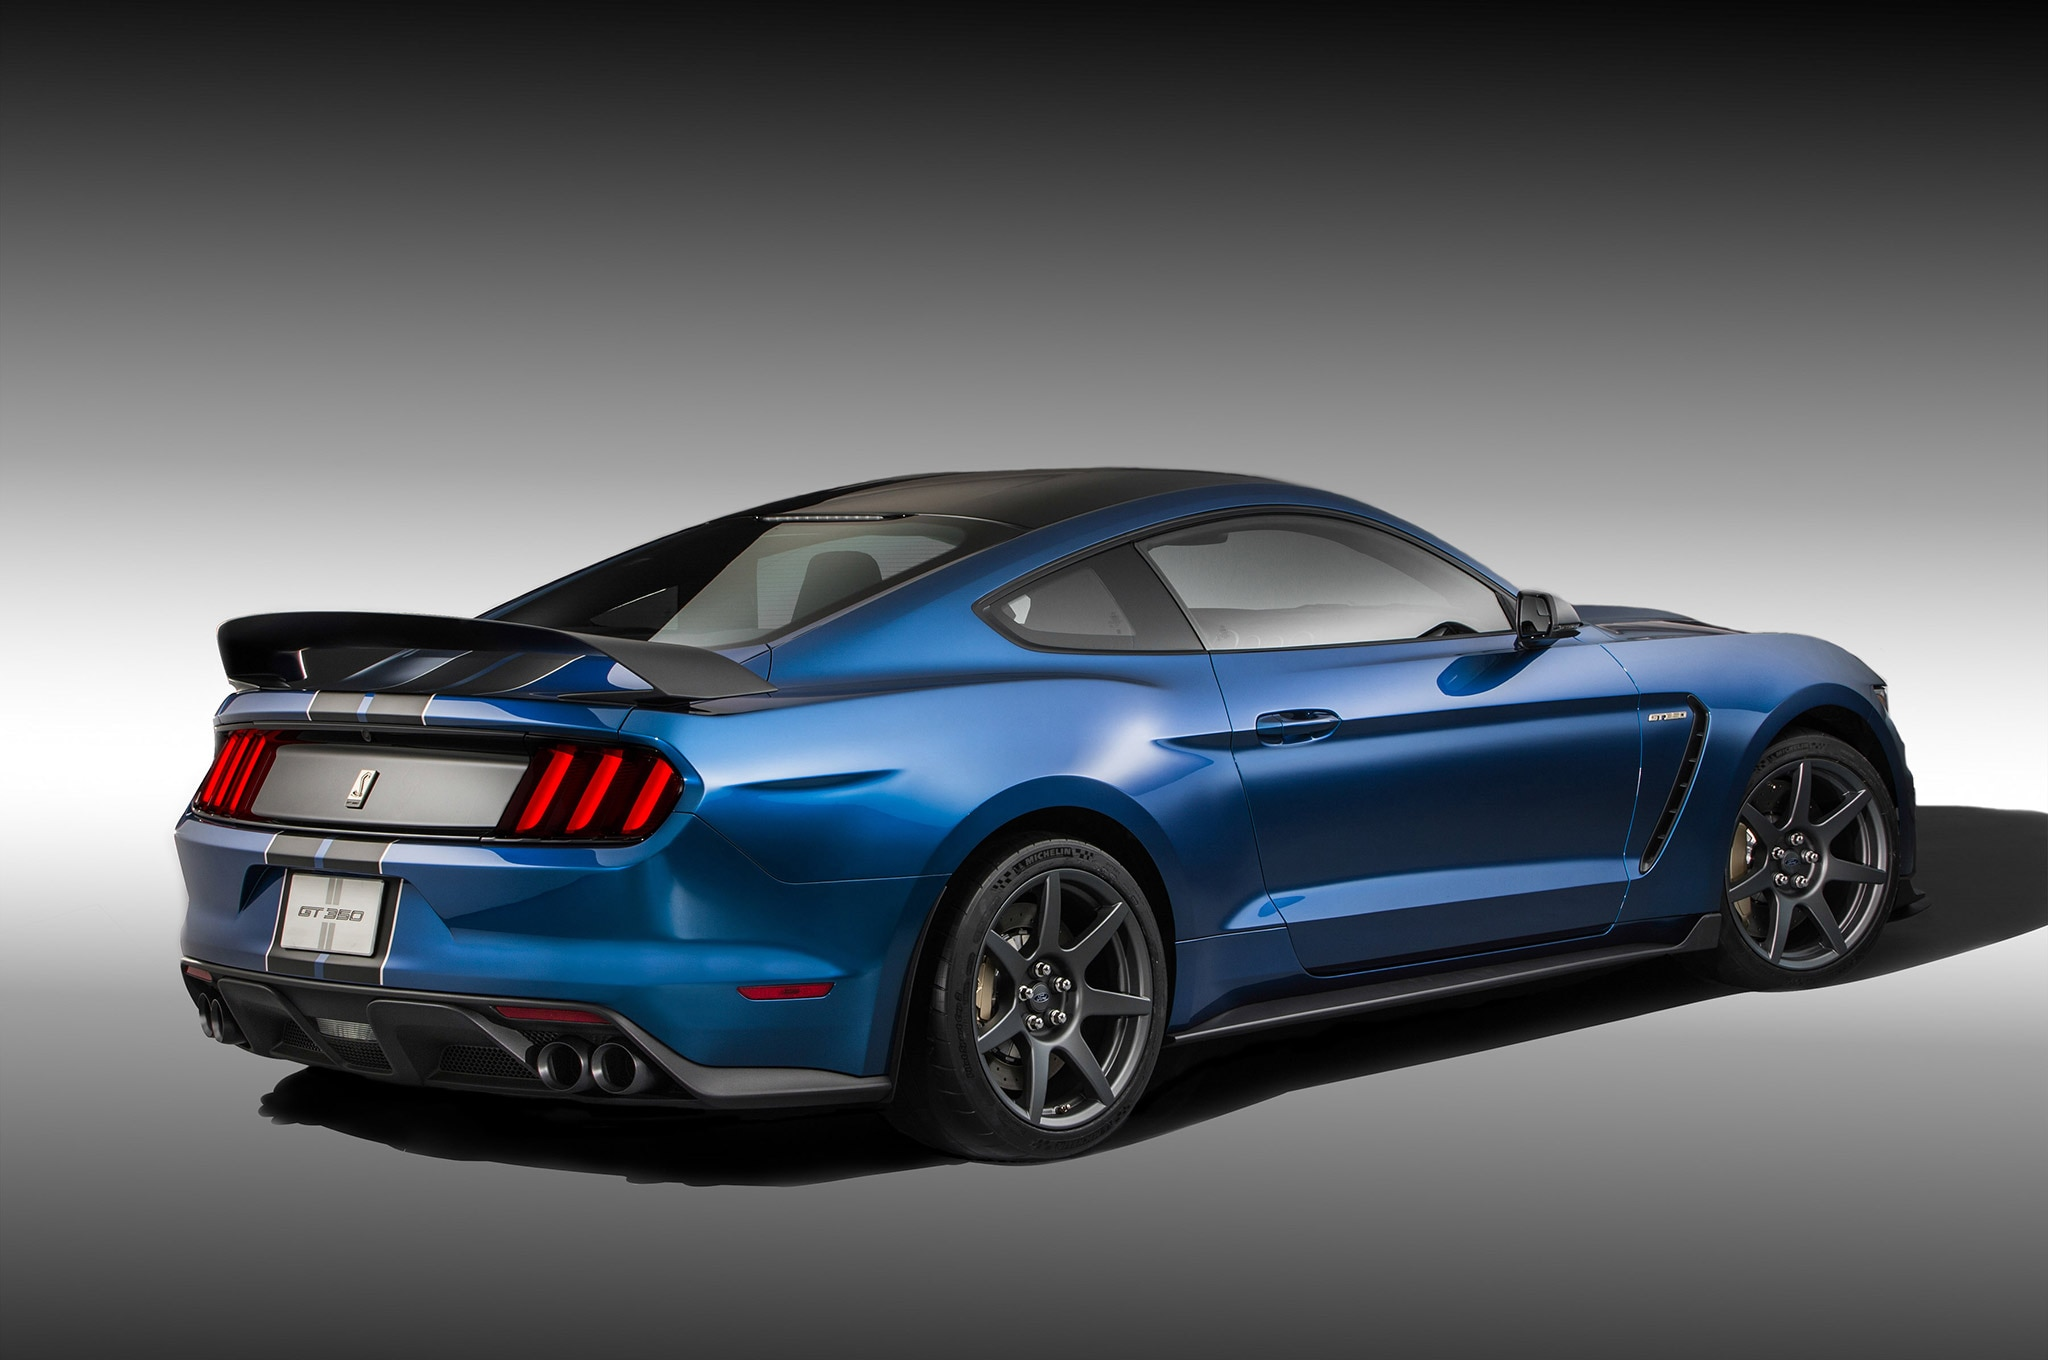 2015 Ford Shelby GT350R Mustang 4 Rear Three Quarter